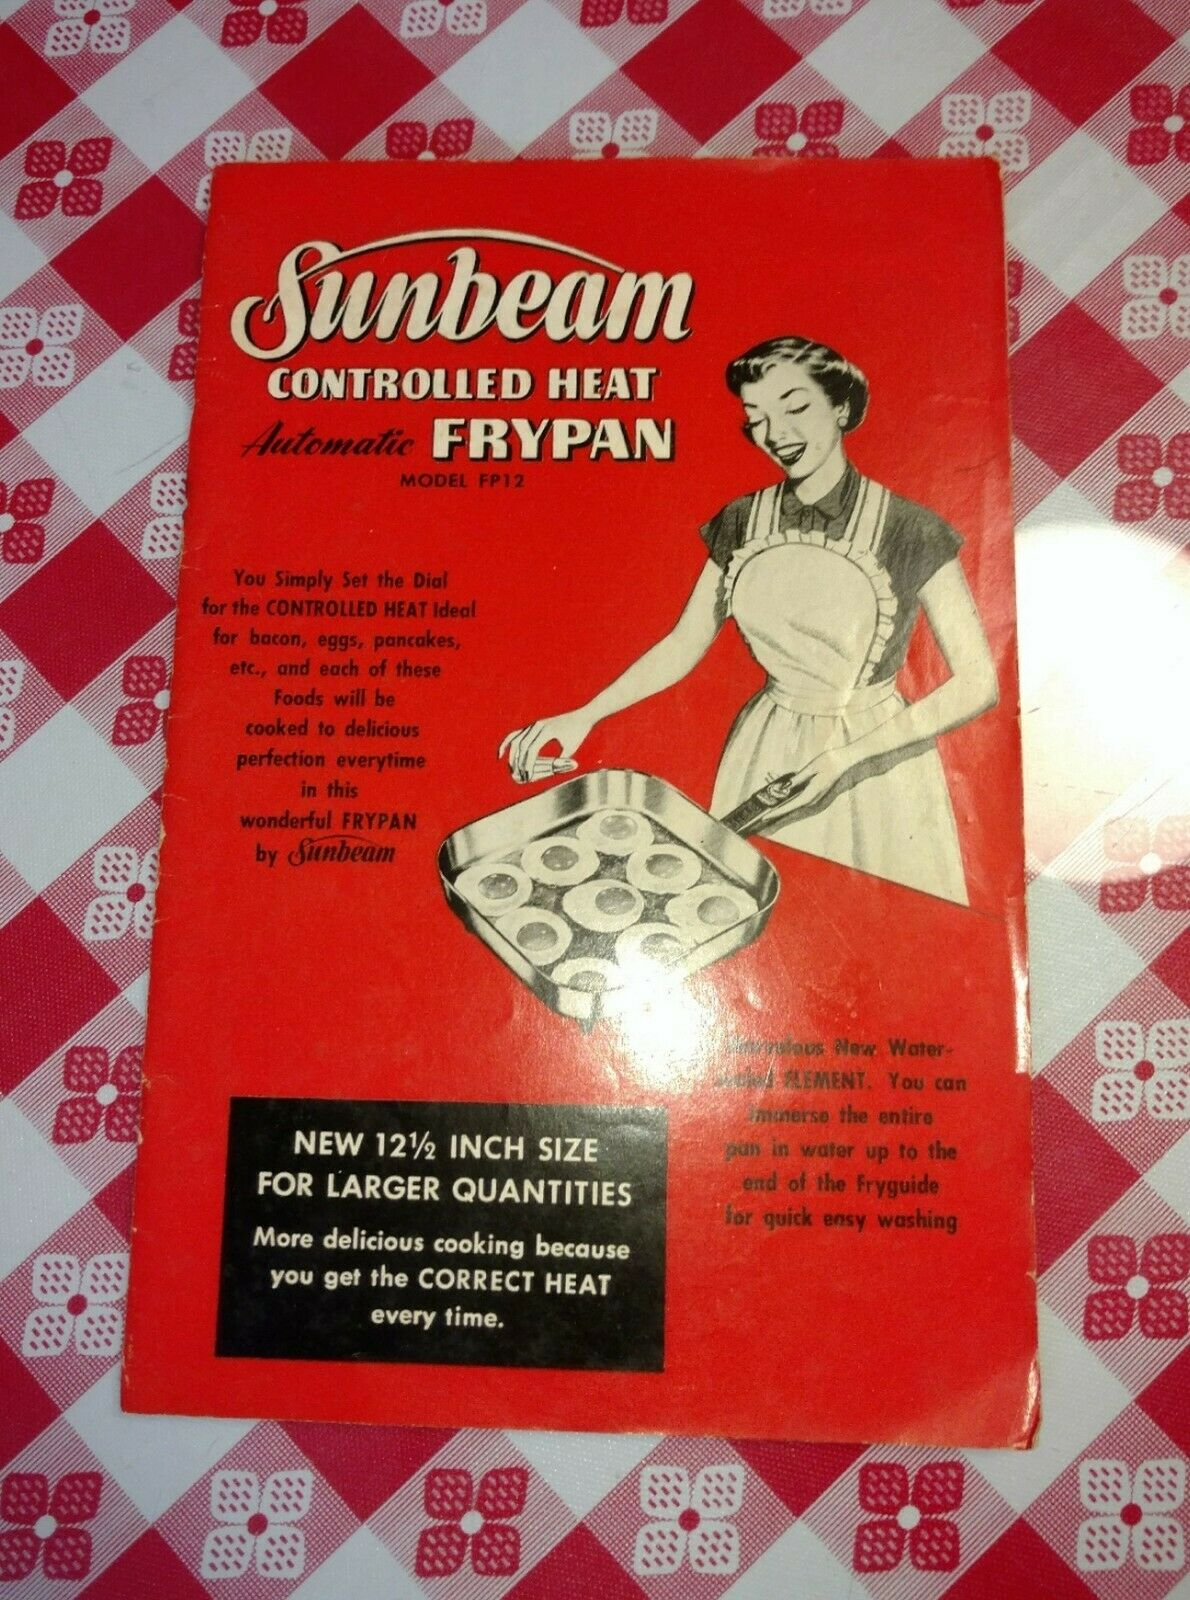 1956 Sunbeam Controlled Heat Automatic Frypan Model FP12 manual and cookbook